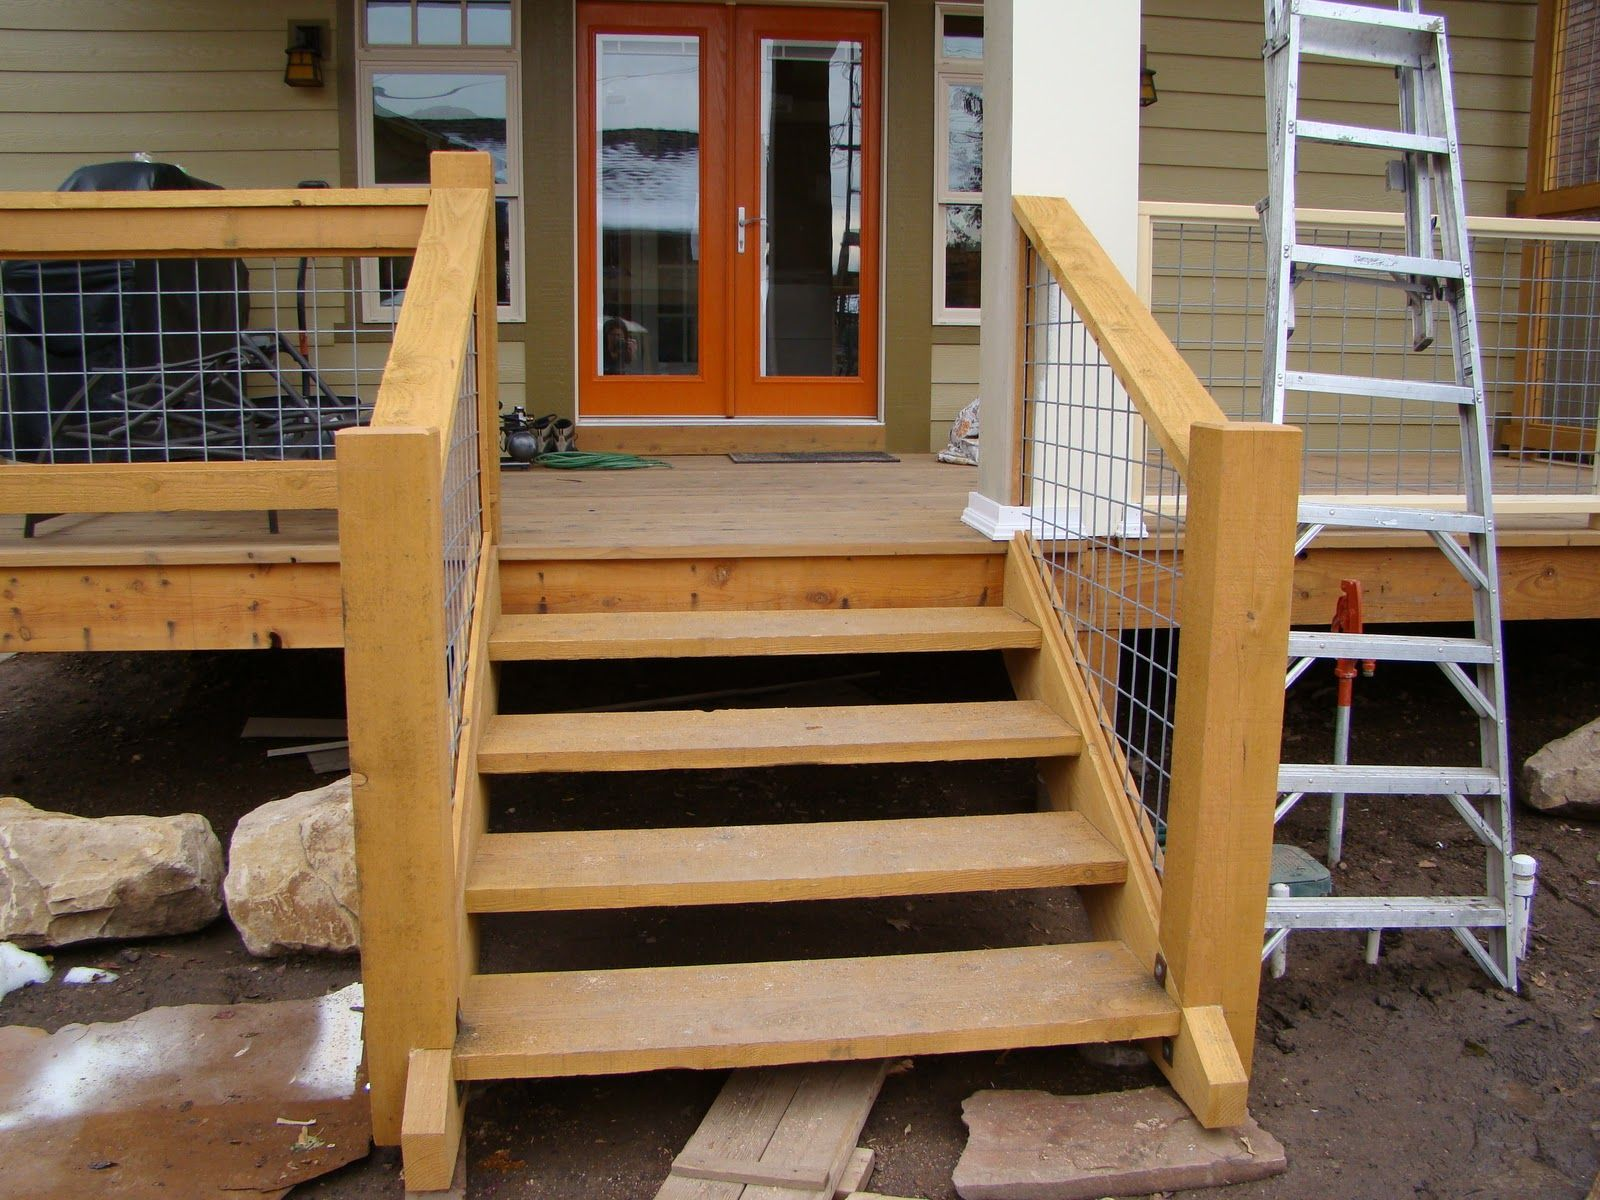 Hog Panel Stair Railing Google Search Outdoor Stair   Outdoor Deck Stair Railing